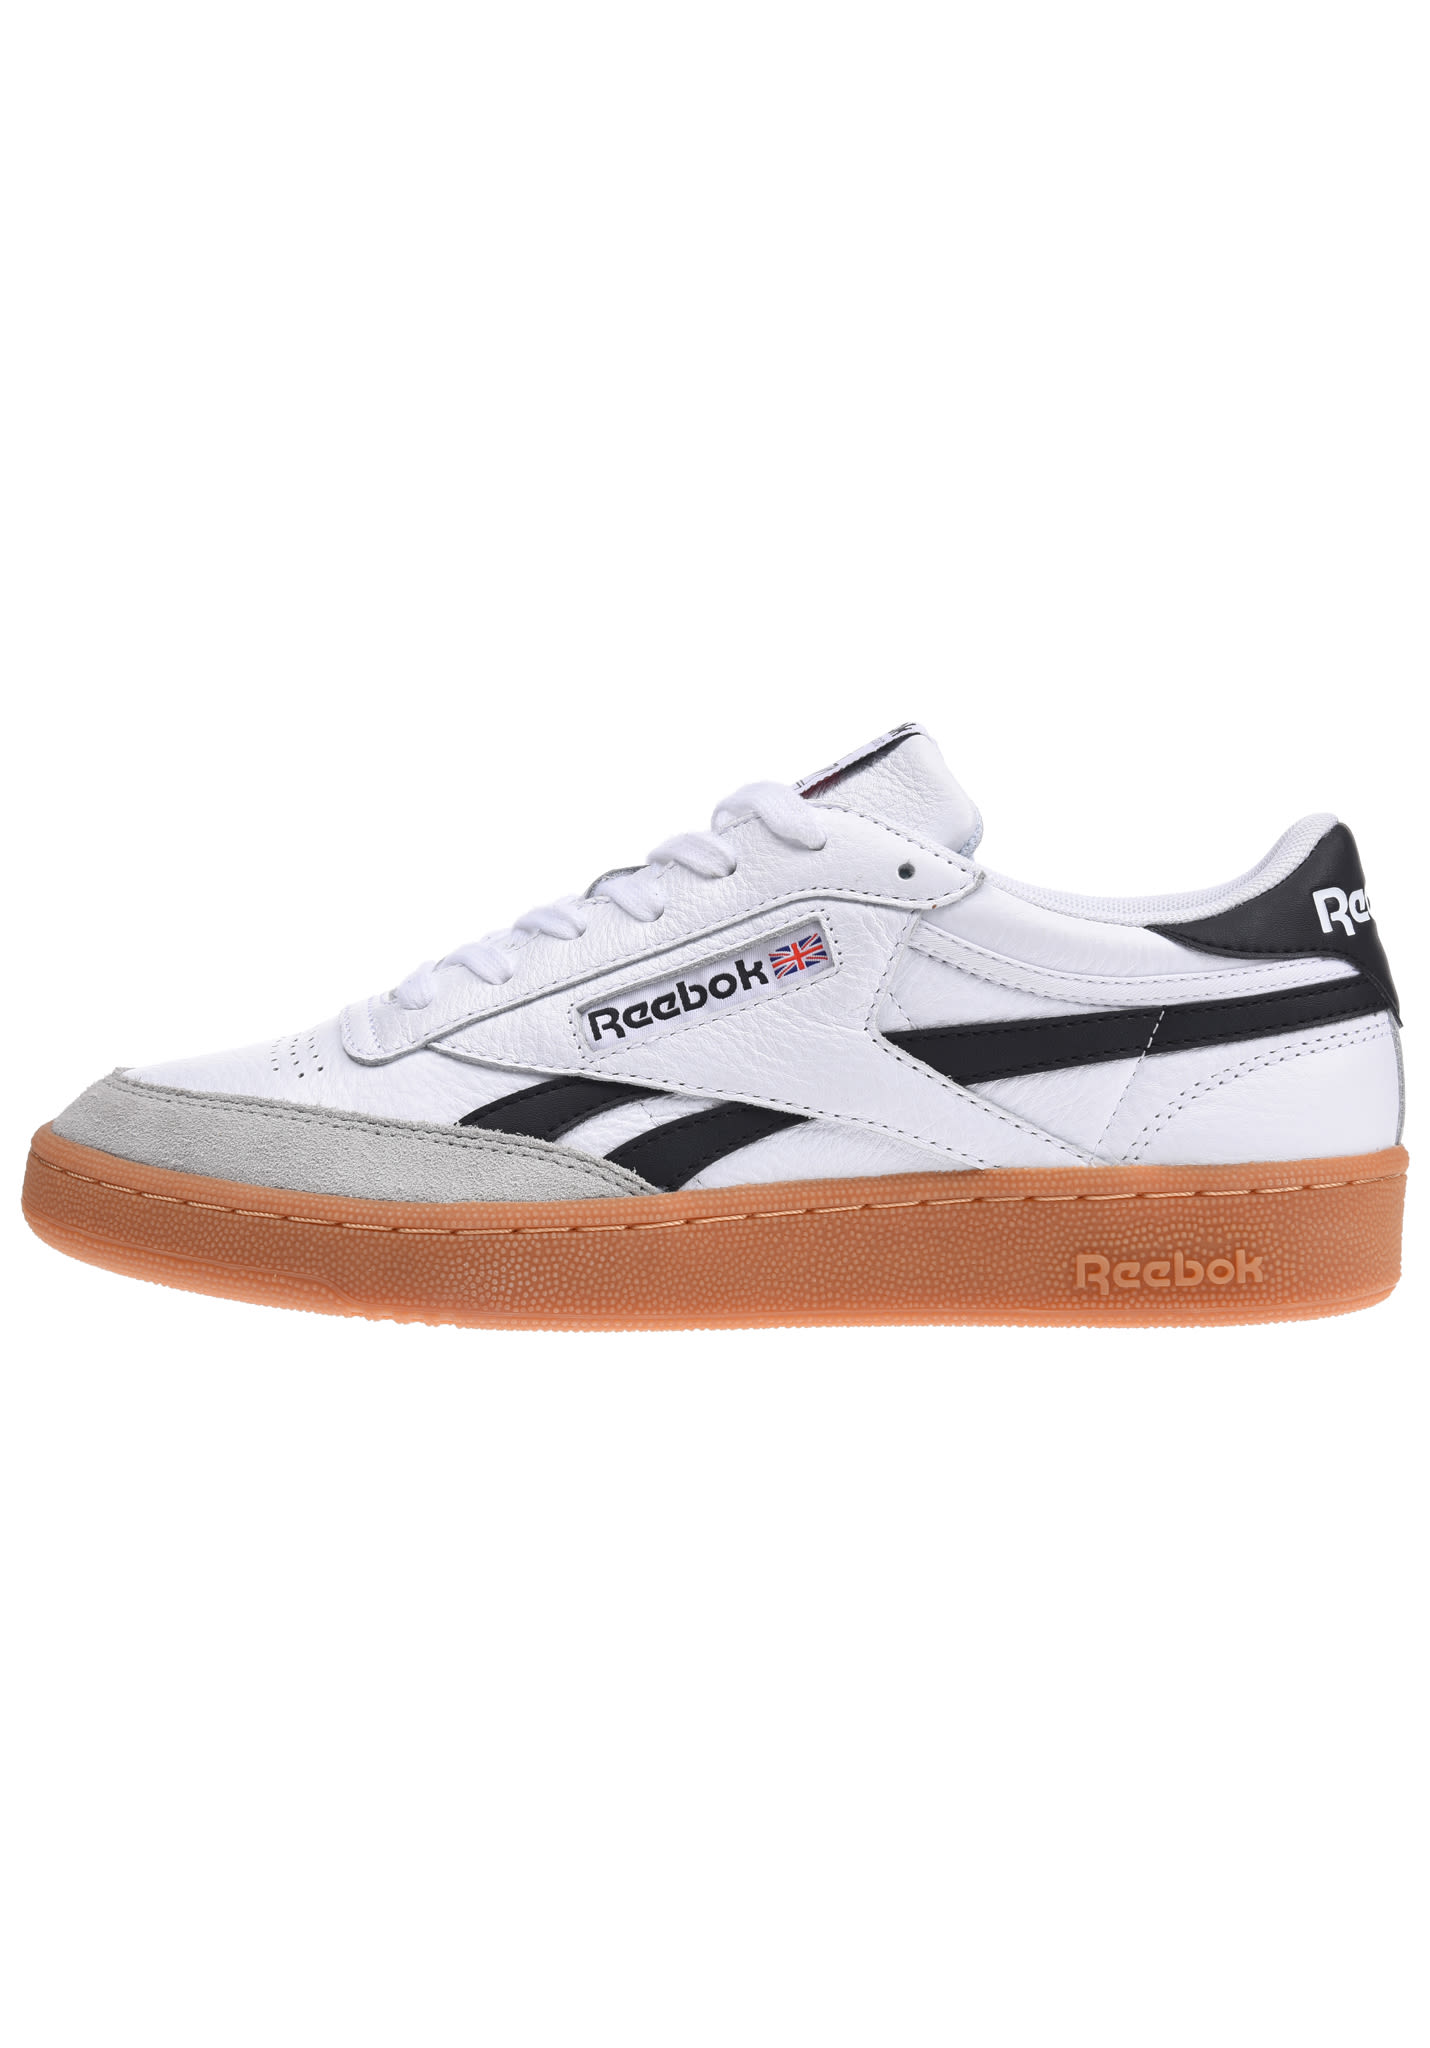 0a06c5061f4 Reebok Revenge Plus Gum - Sneakers for Men - White - Planet Sports